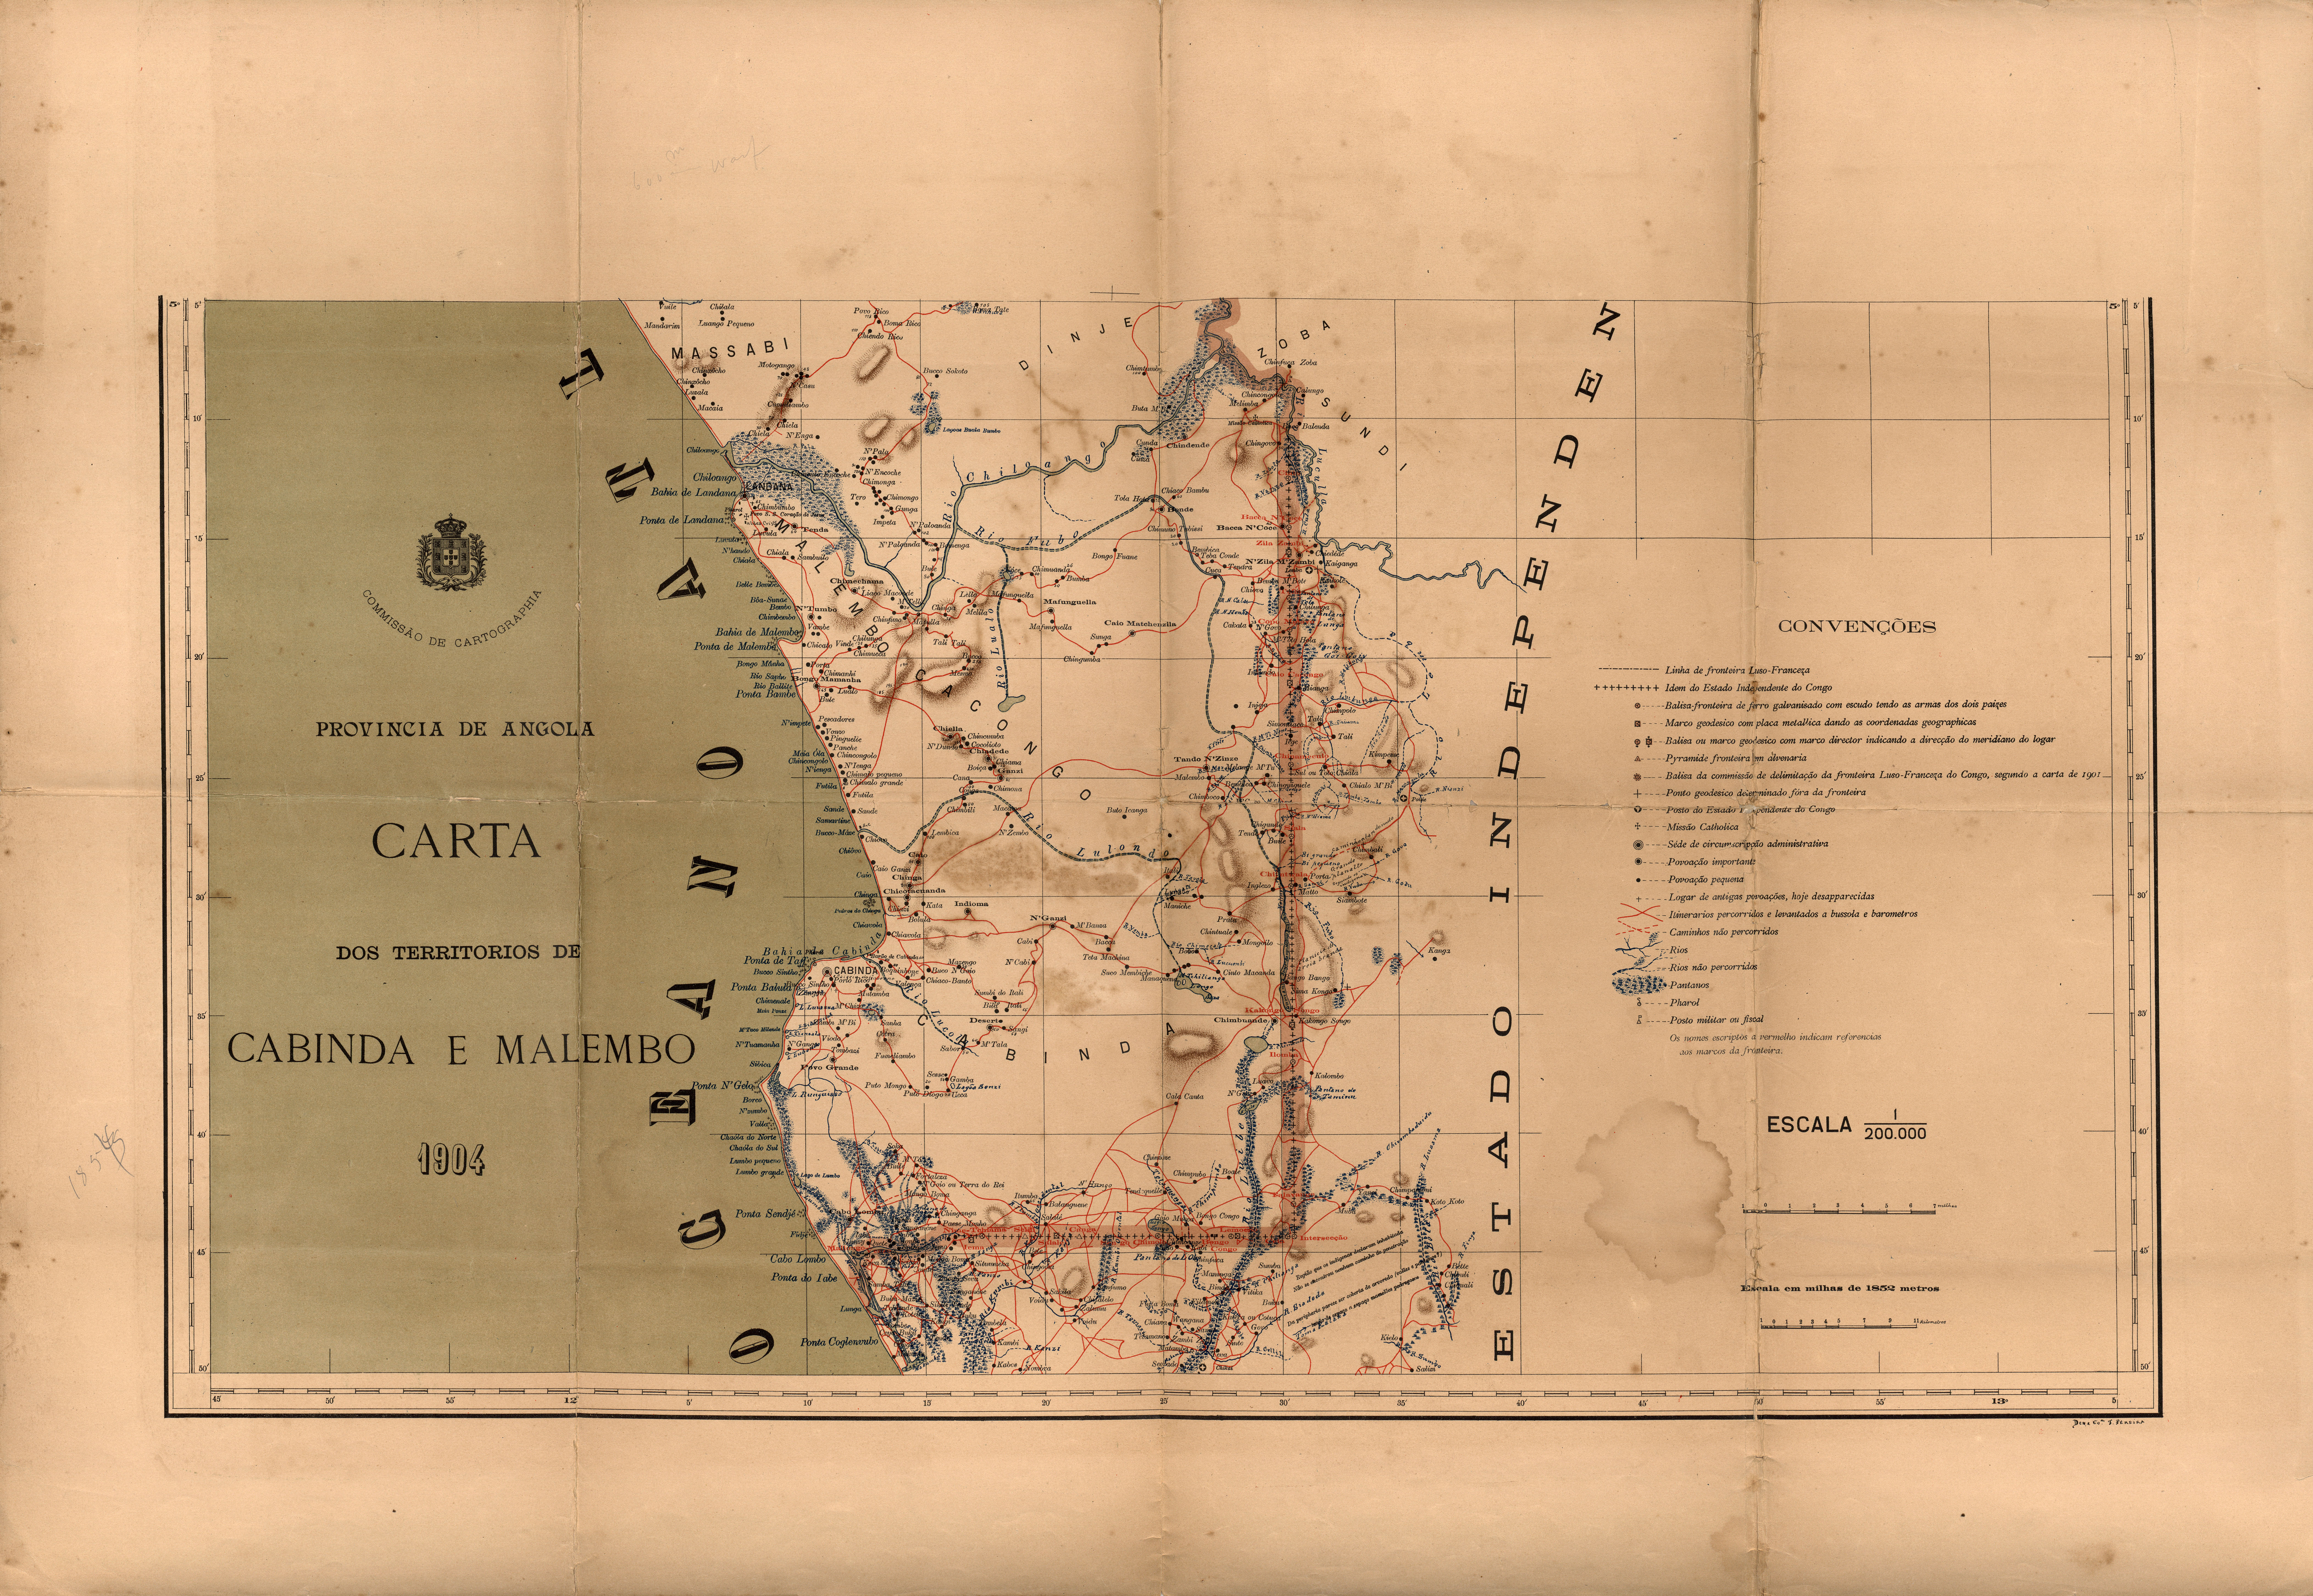 Africa Historical Maps - Perry-Castañeda Map Collection - UT ... on map of africa, map of argentina, map of lesotho, map of southern europe, map of philippines, map of ghana, map of djibouti, map of spain, map of zambia, map of chile, map of madagascar, map of mozambique, map of armenia, map of african countries, map of bolivia, map of botswana, map of burkina faso, map of albania, map of namibia, map of latvia,